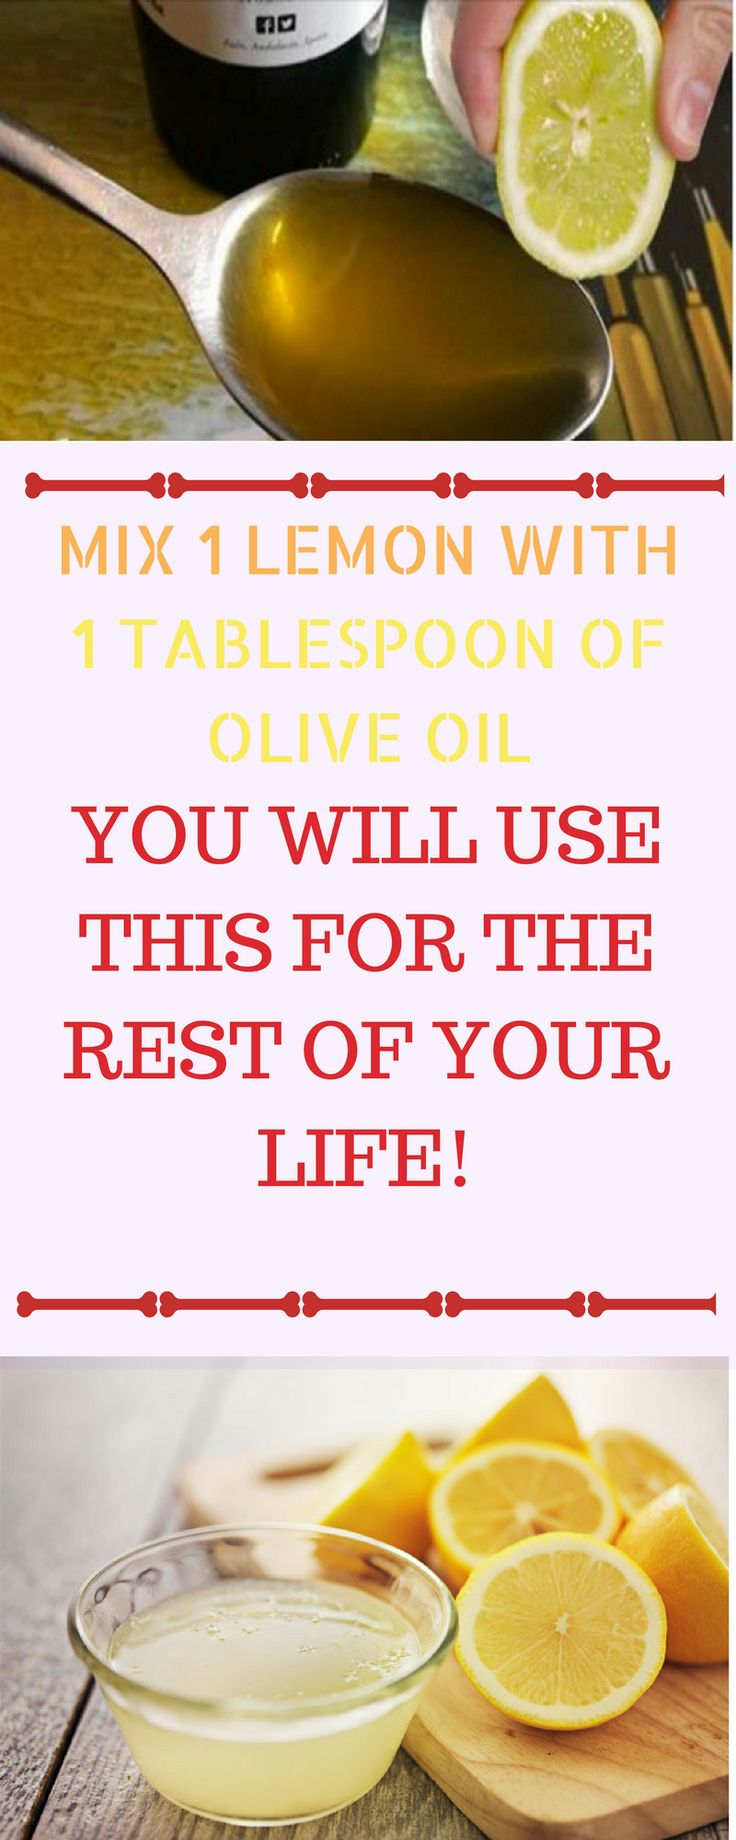 Mix 1 Lemon With 1 Tablespoon Of Olive Oil And You Will Use This For The Rest Of Your Life!